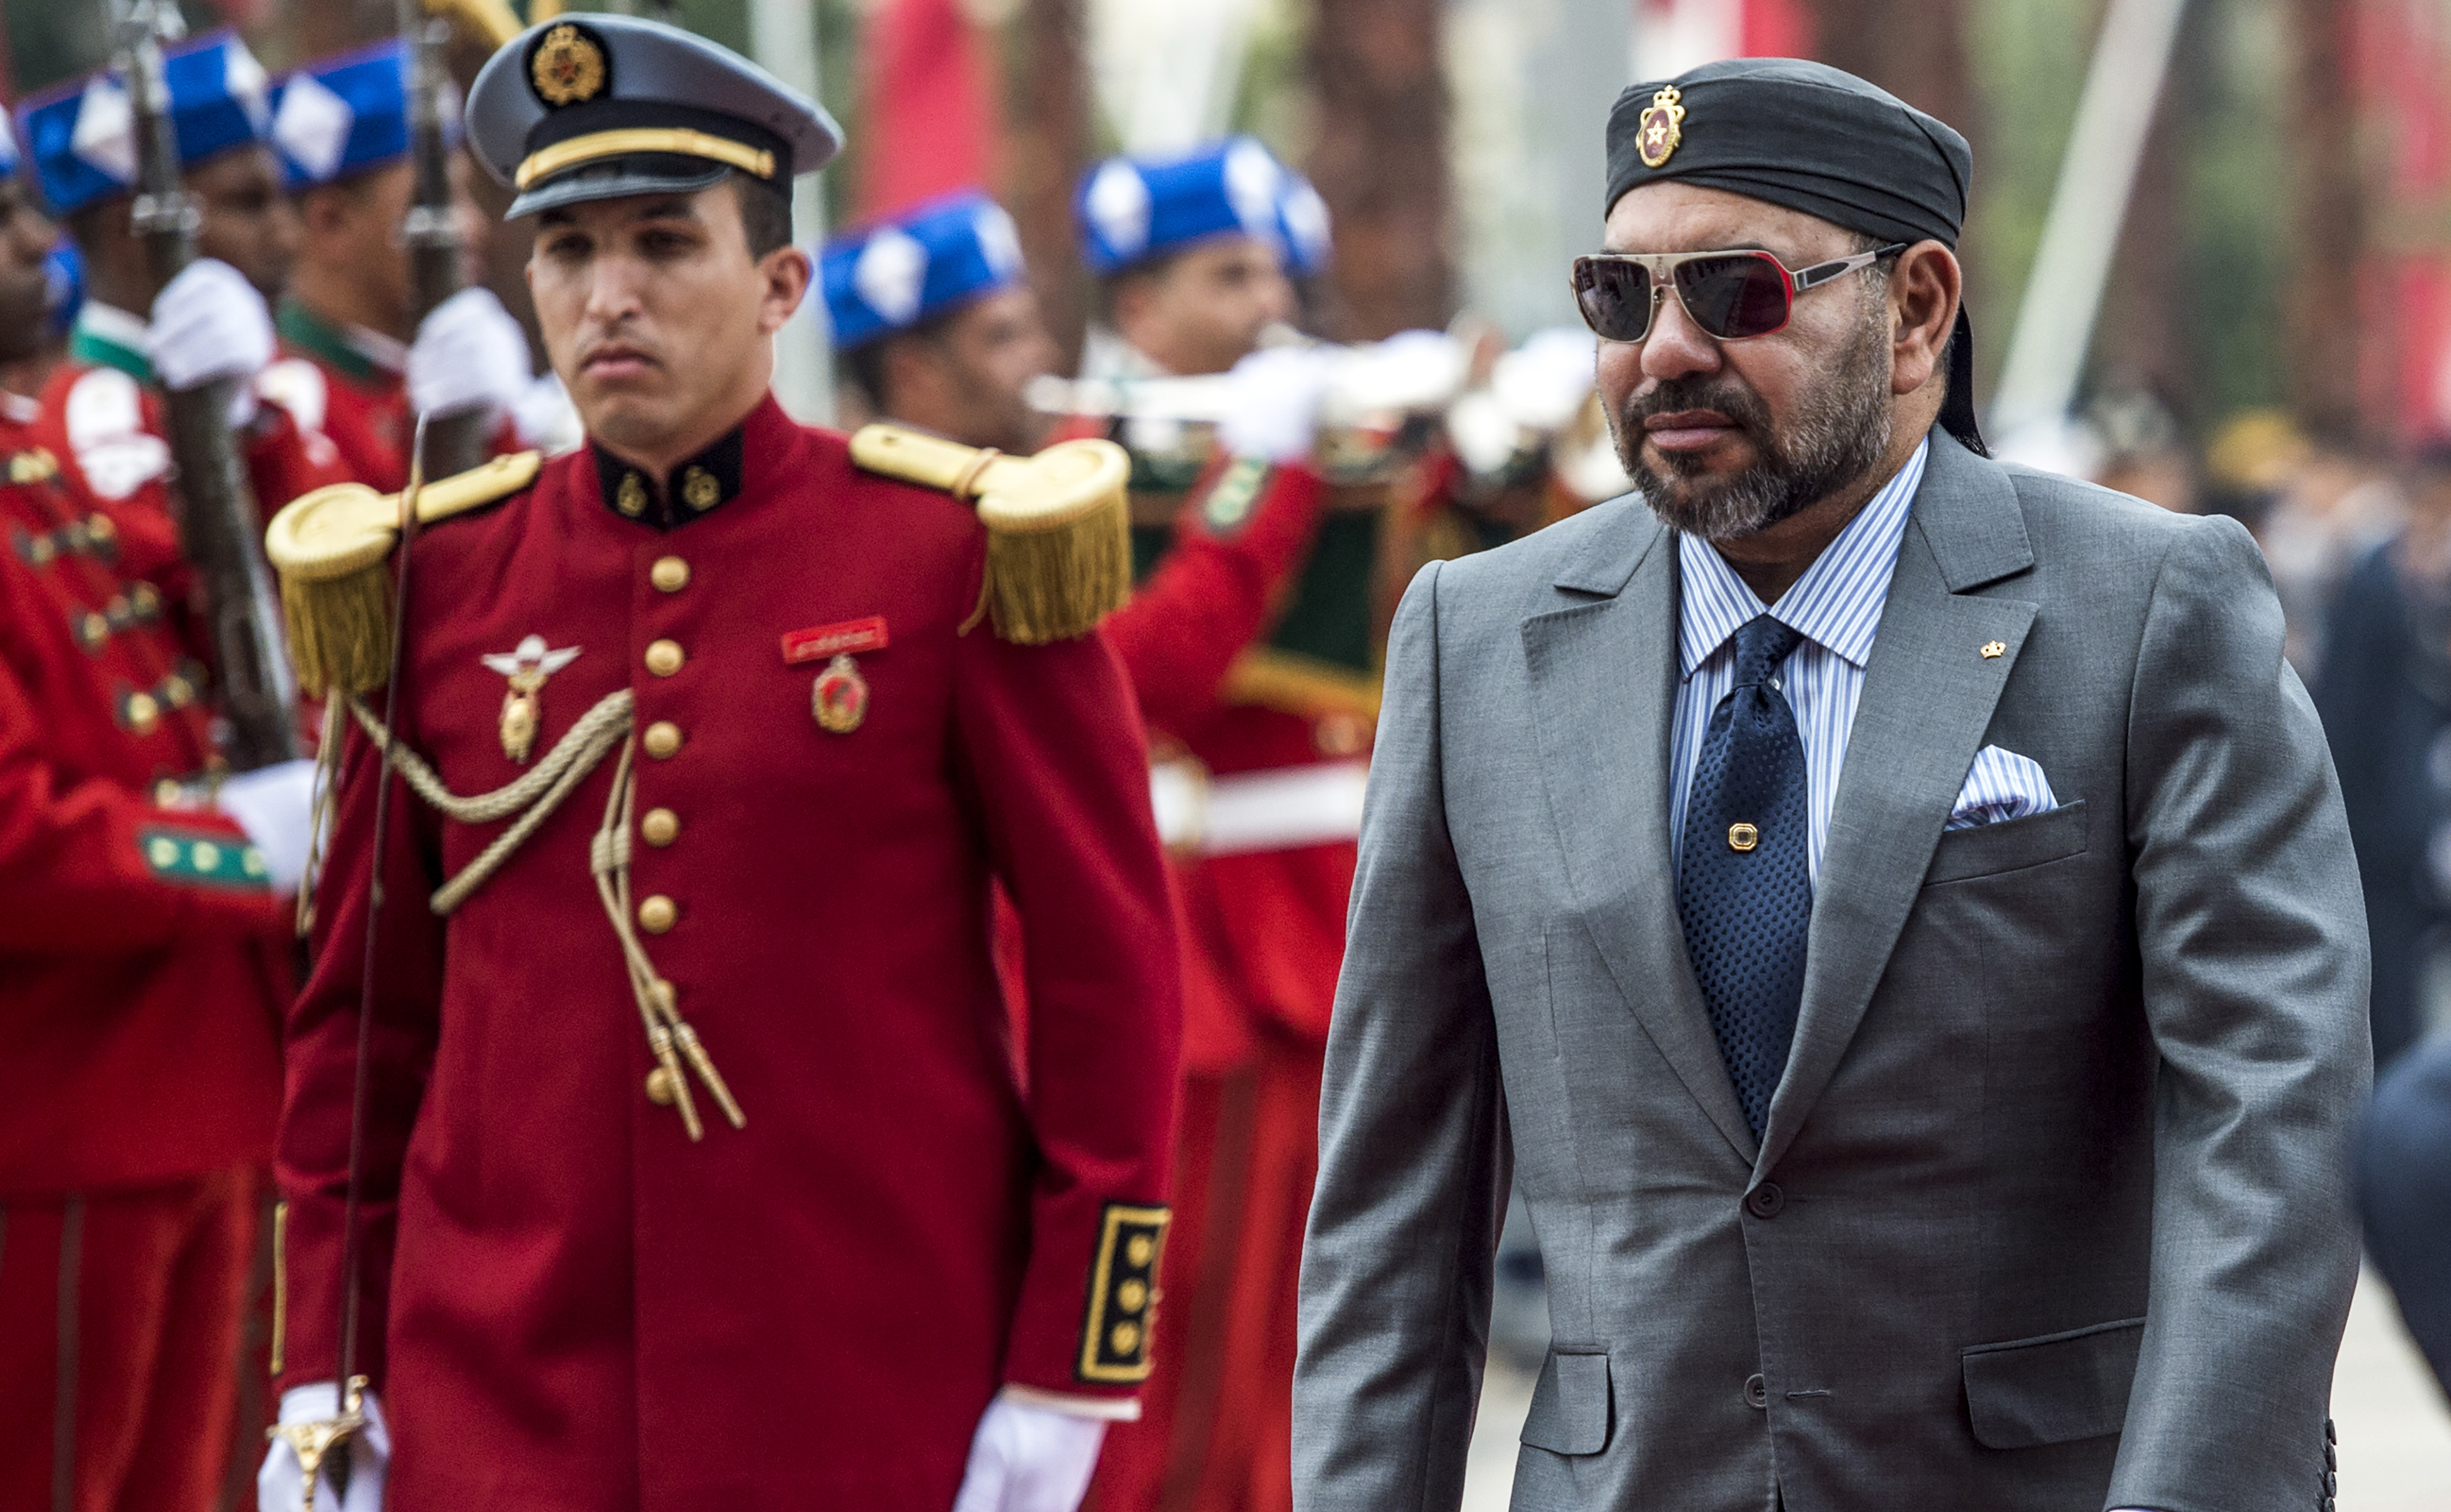 Morocco's King Mohamed VI (R) arrives for the inauguration of the capital Rabat's Agdal train station for the new LGV (High-speed rail) line on November 17, 2018. (FADEL SENNA/AFP/Getty Images)